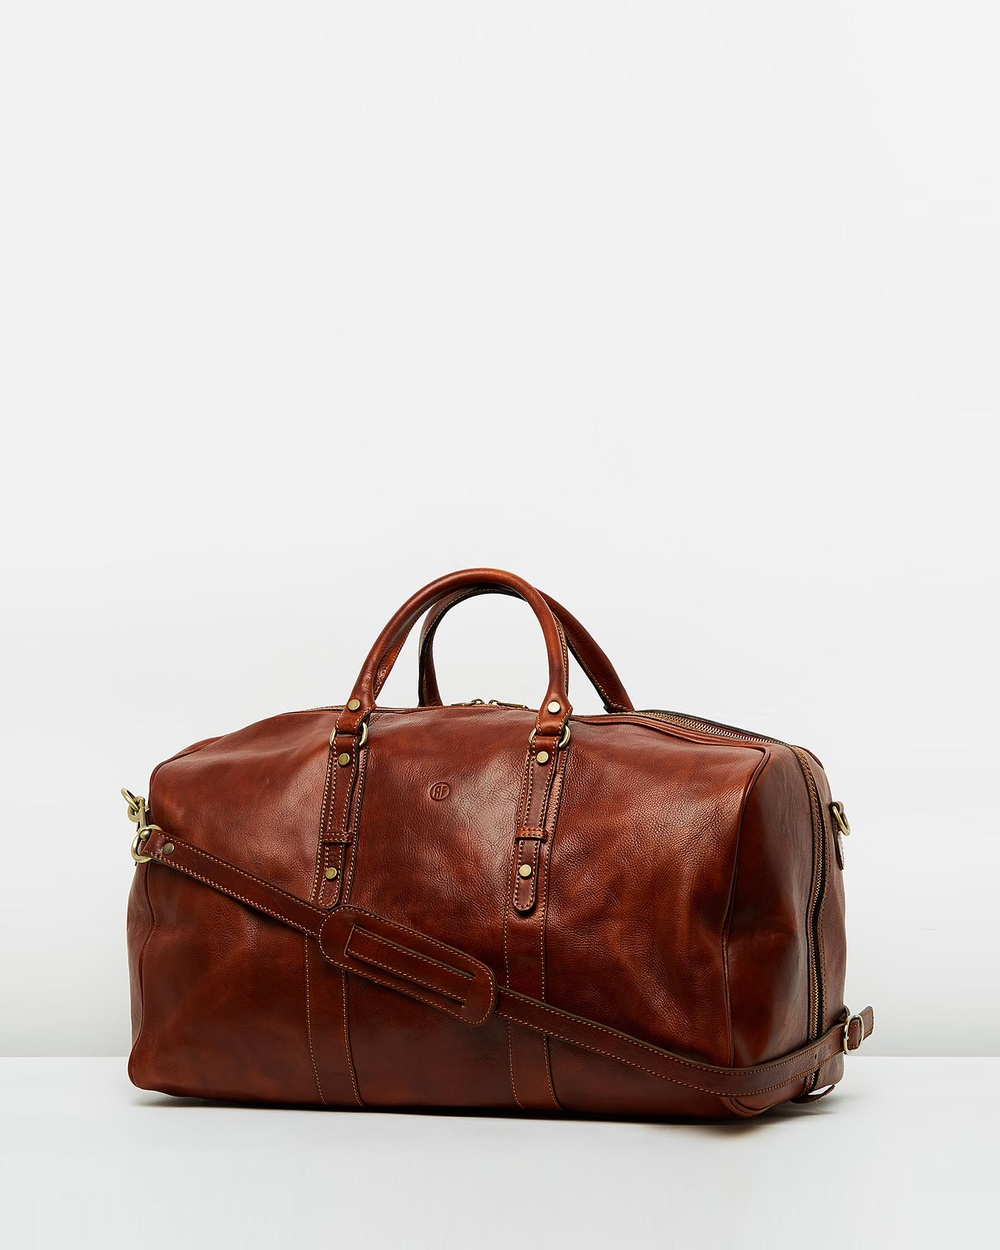 Republic of Florence Marco Polo Duffle Bags Brown